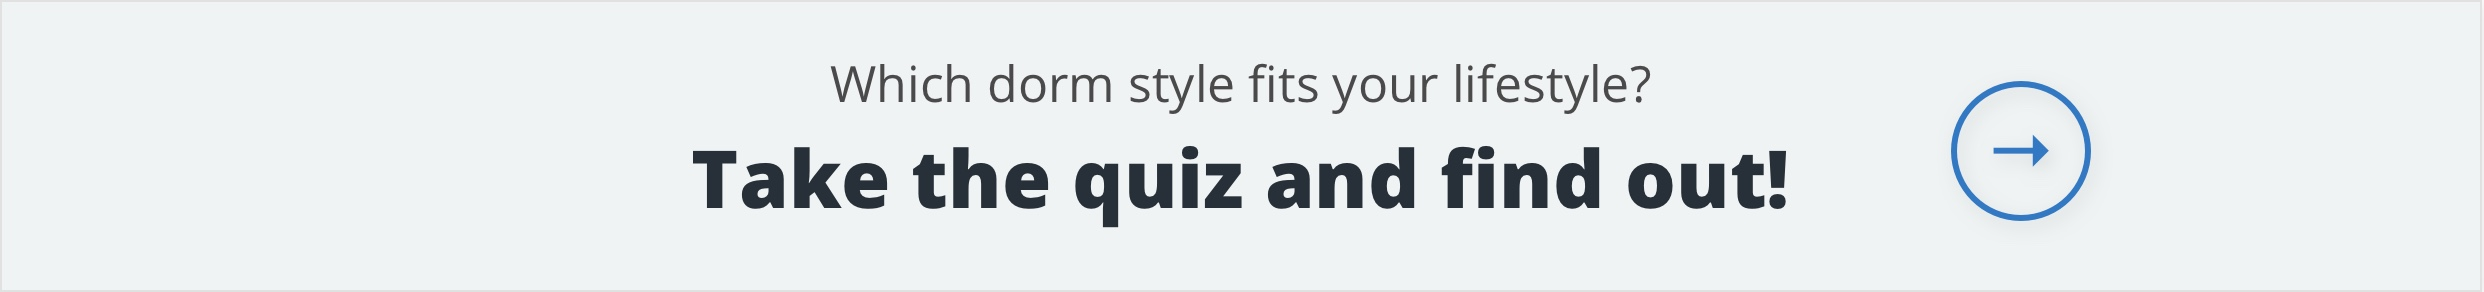 Find Your Back to School Style: Take the quiz